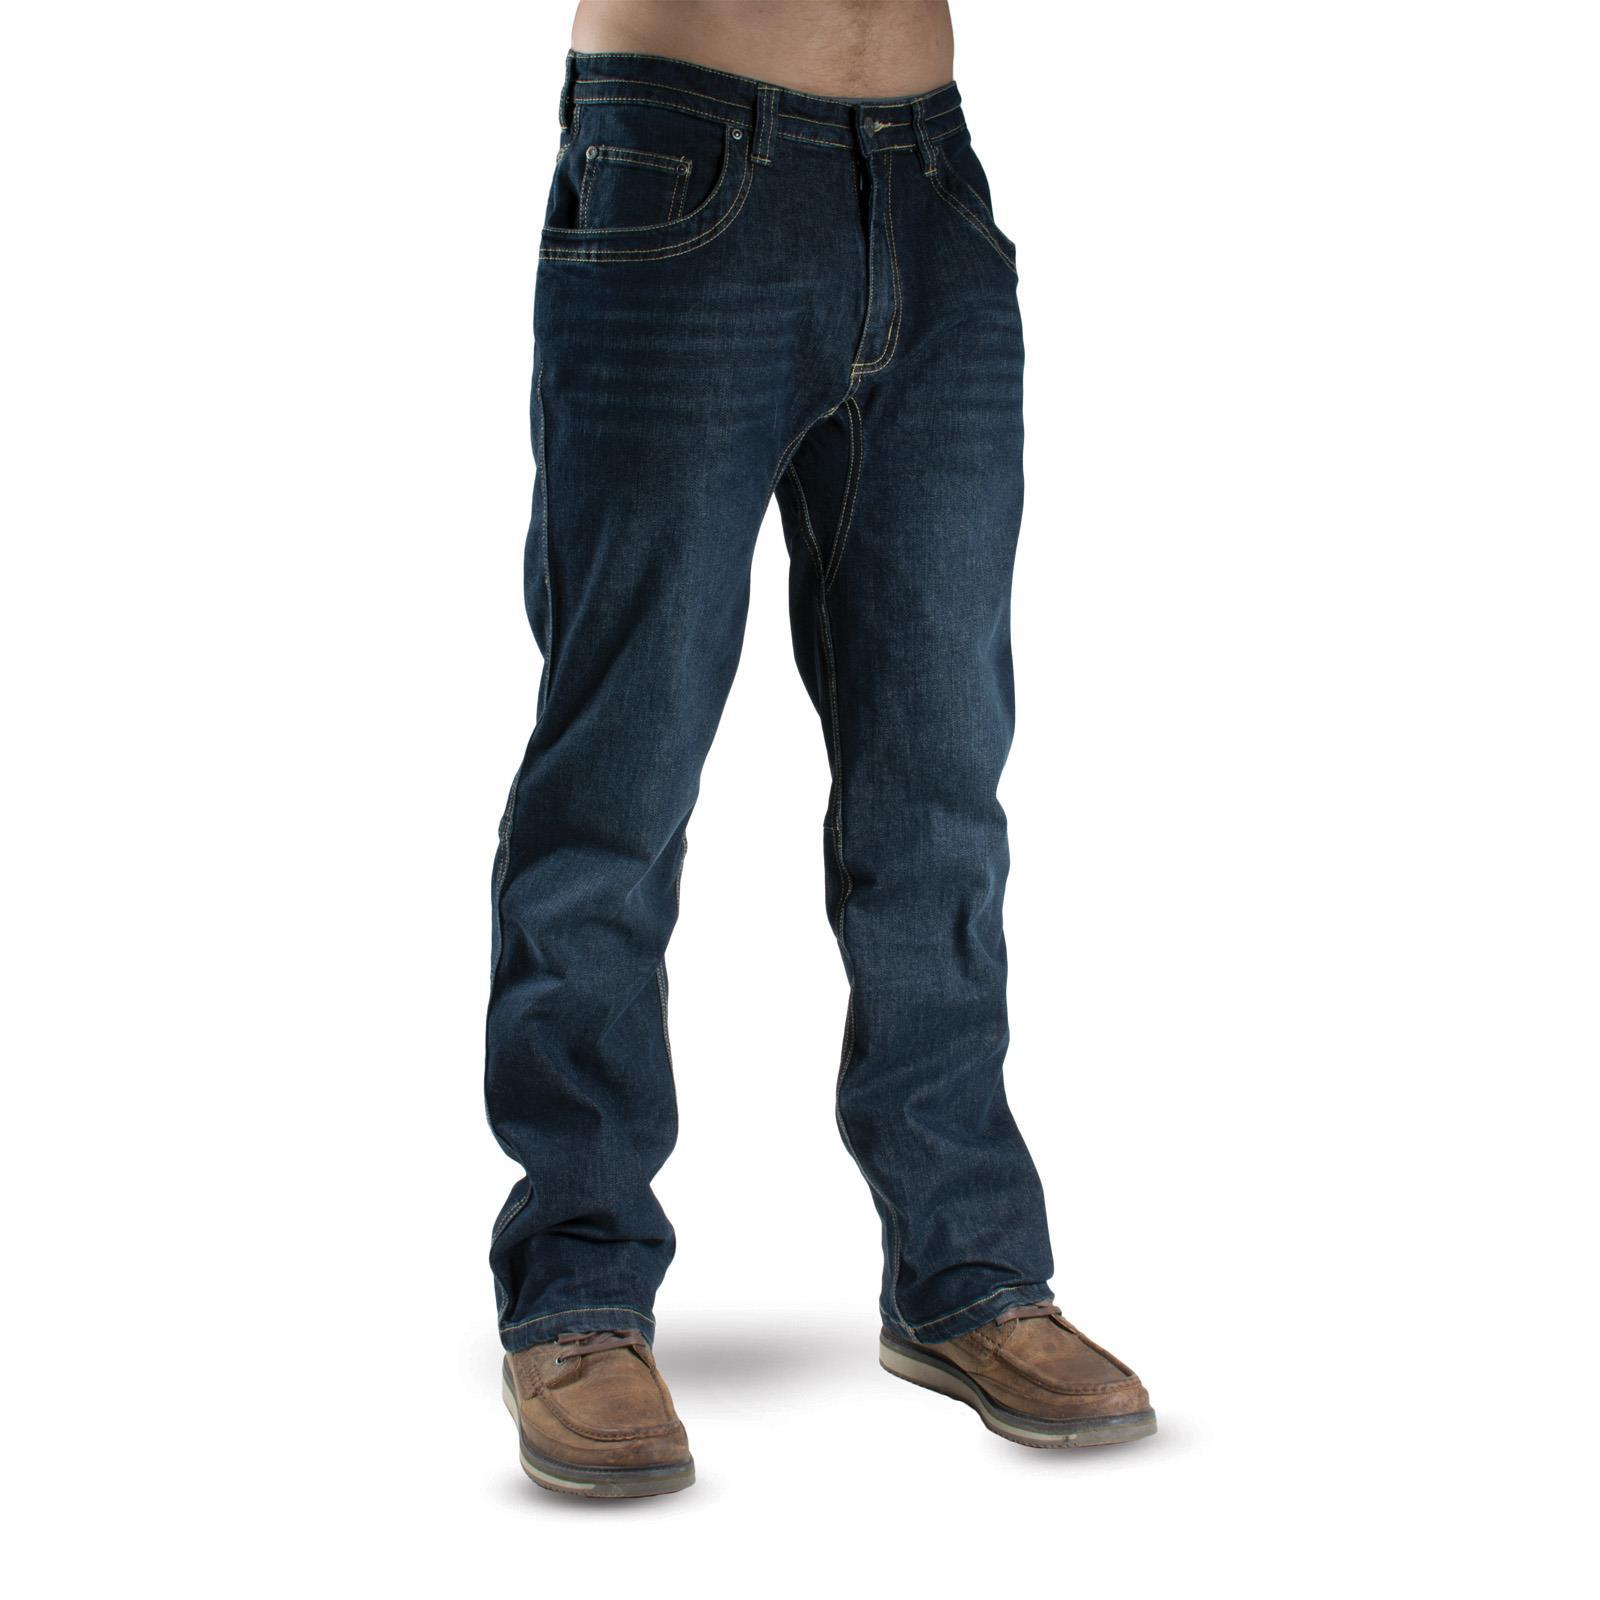 the best denim men comfortable most jeans of types pairs style topman comforter standard for fit major mens body